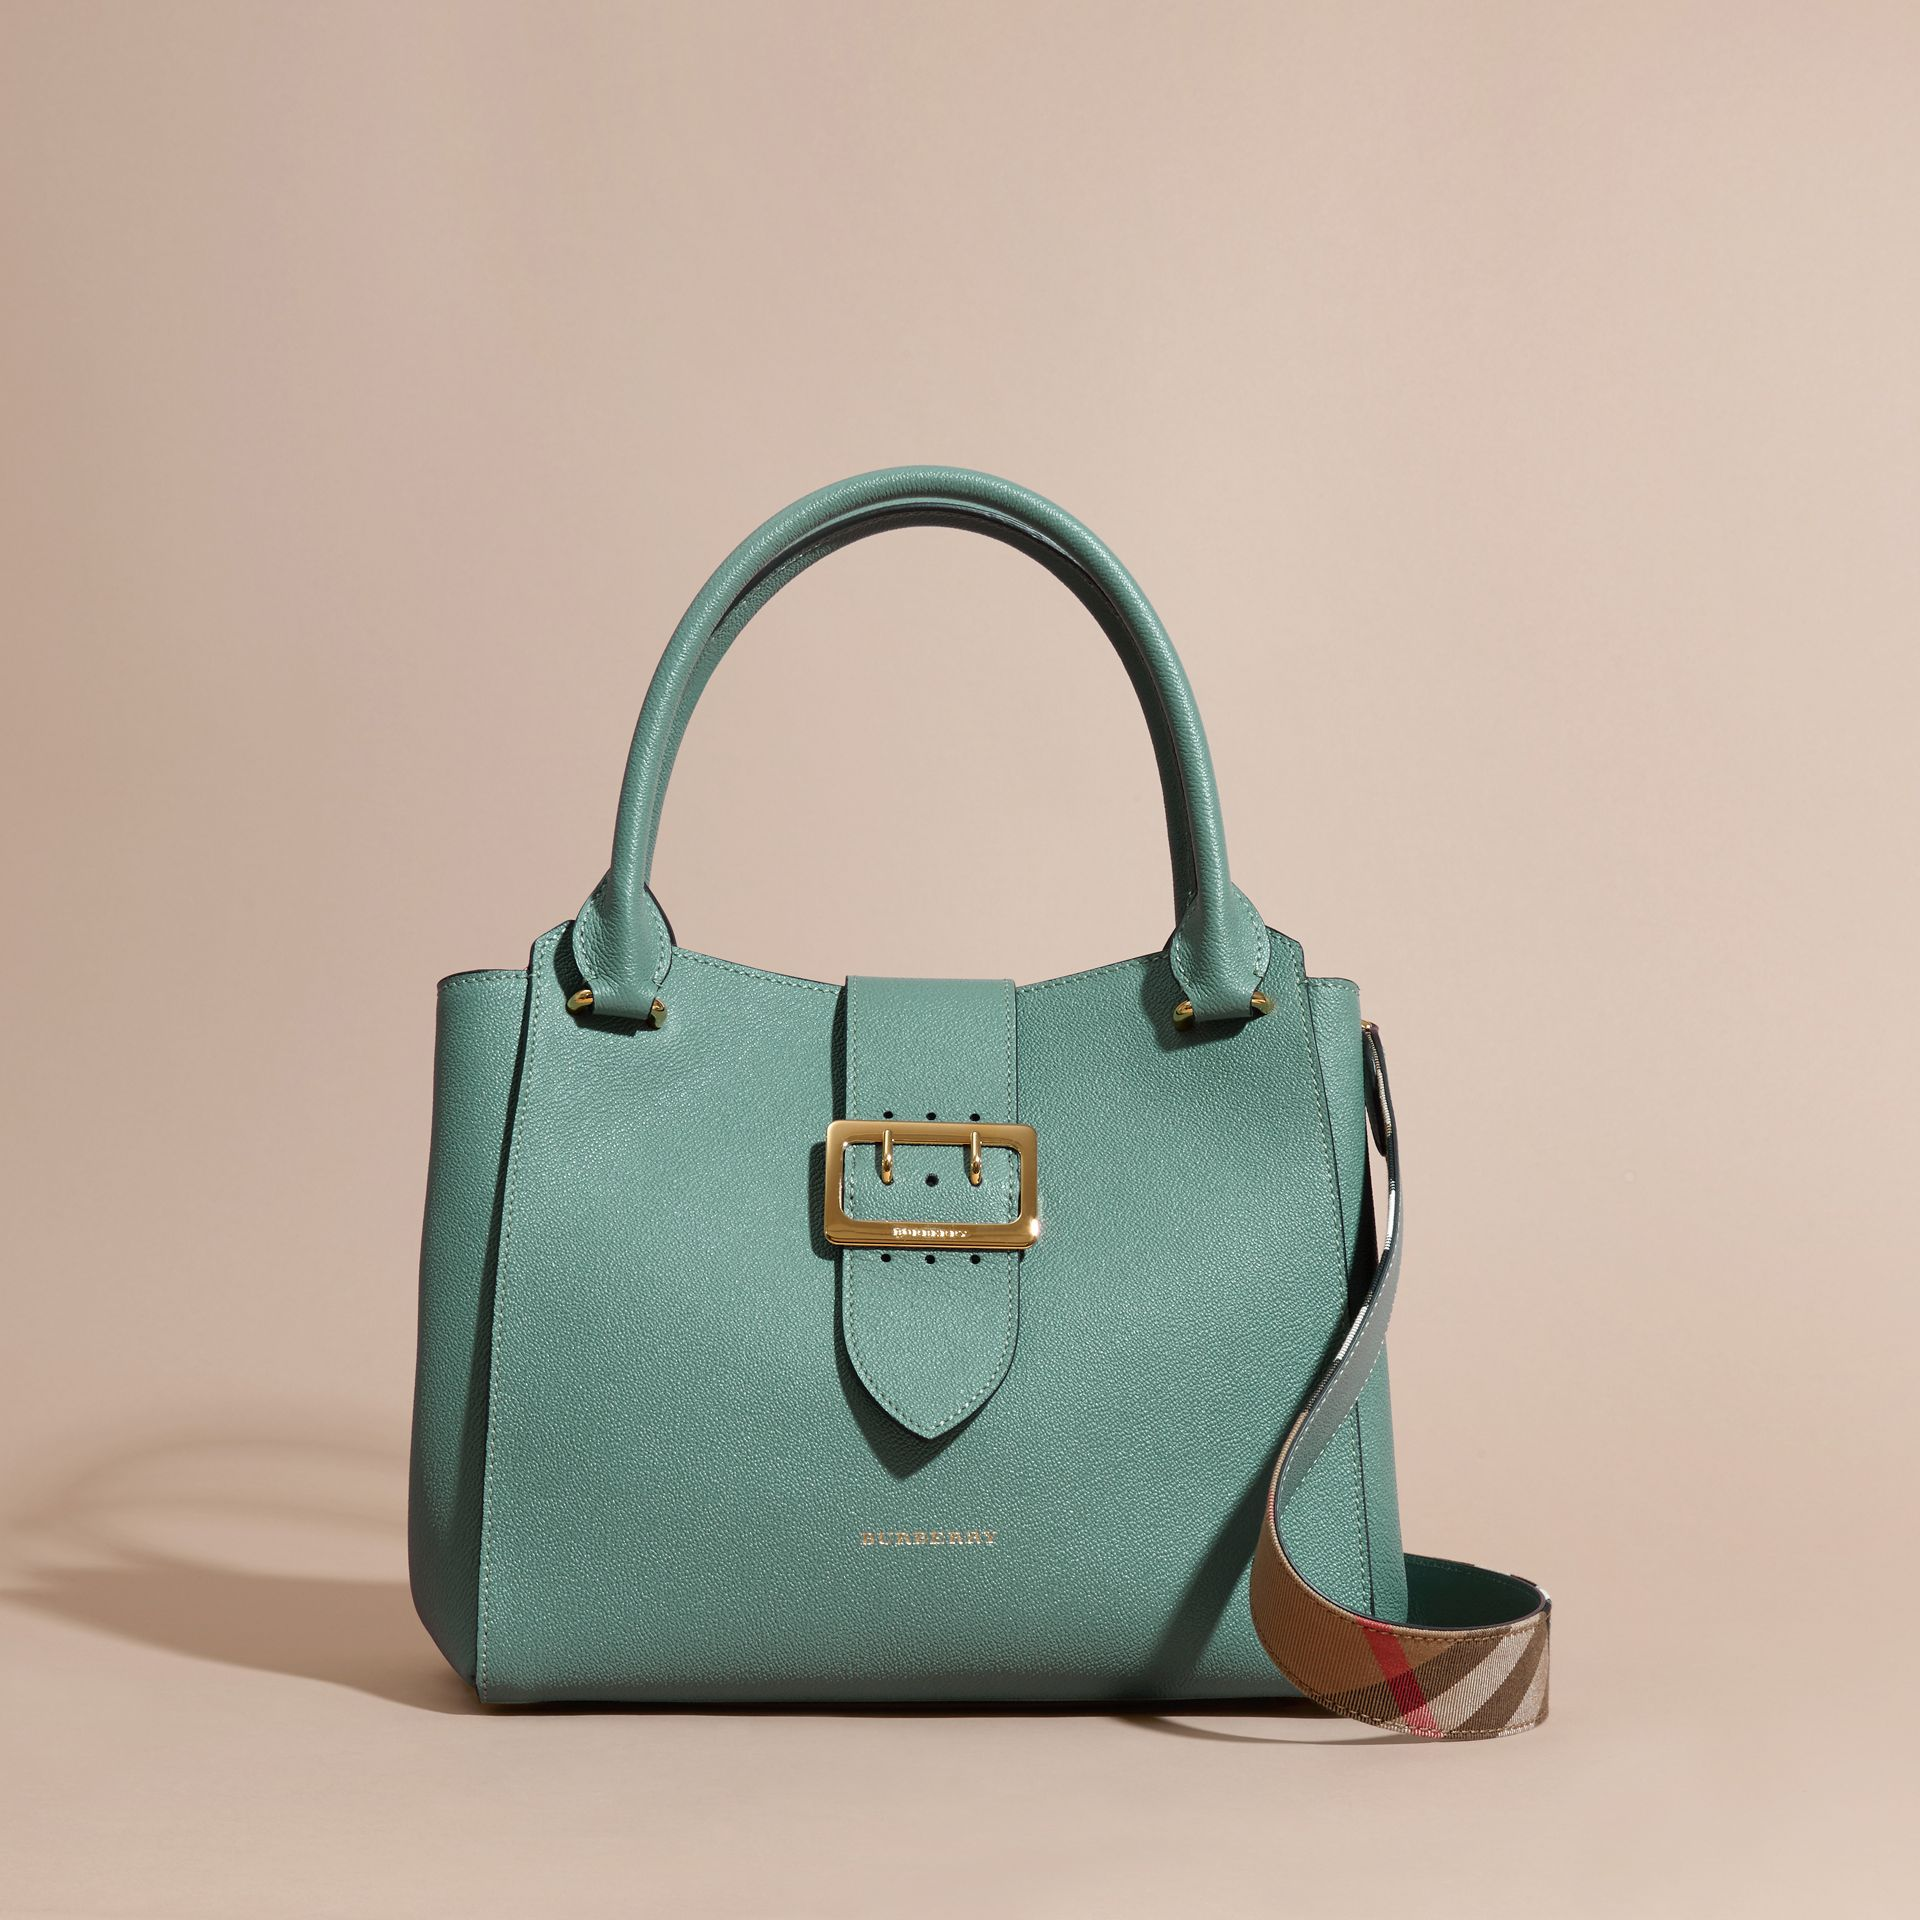 Eucalyptus green The Medium Buckle Tote in Grainy Leather Eucalyptus Green - gallery image 8